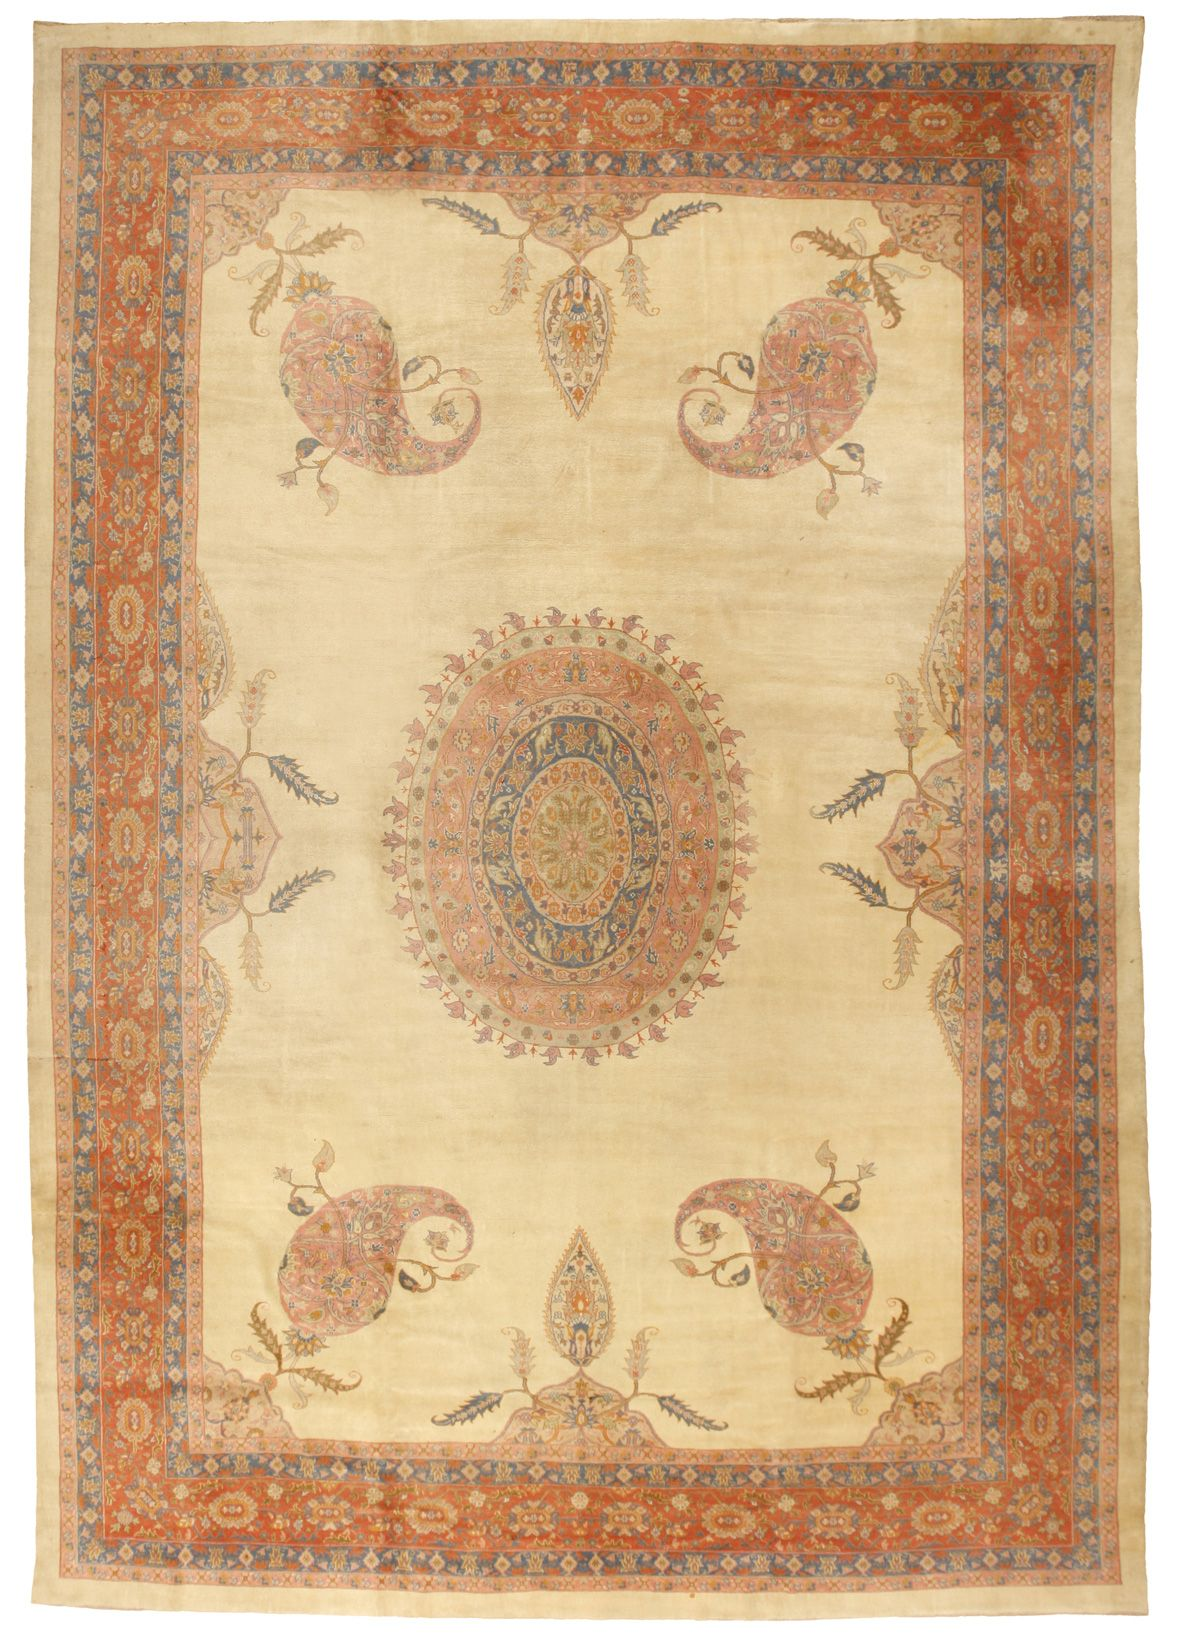 Antique Borlu Carpet 11.9 X 16.8 - Fred Moheban Gallery